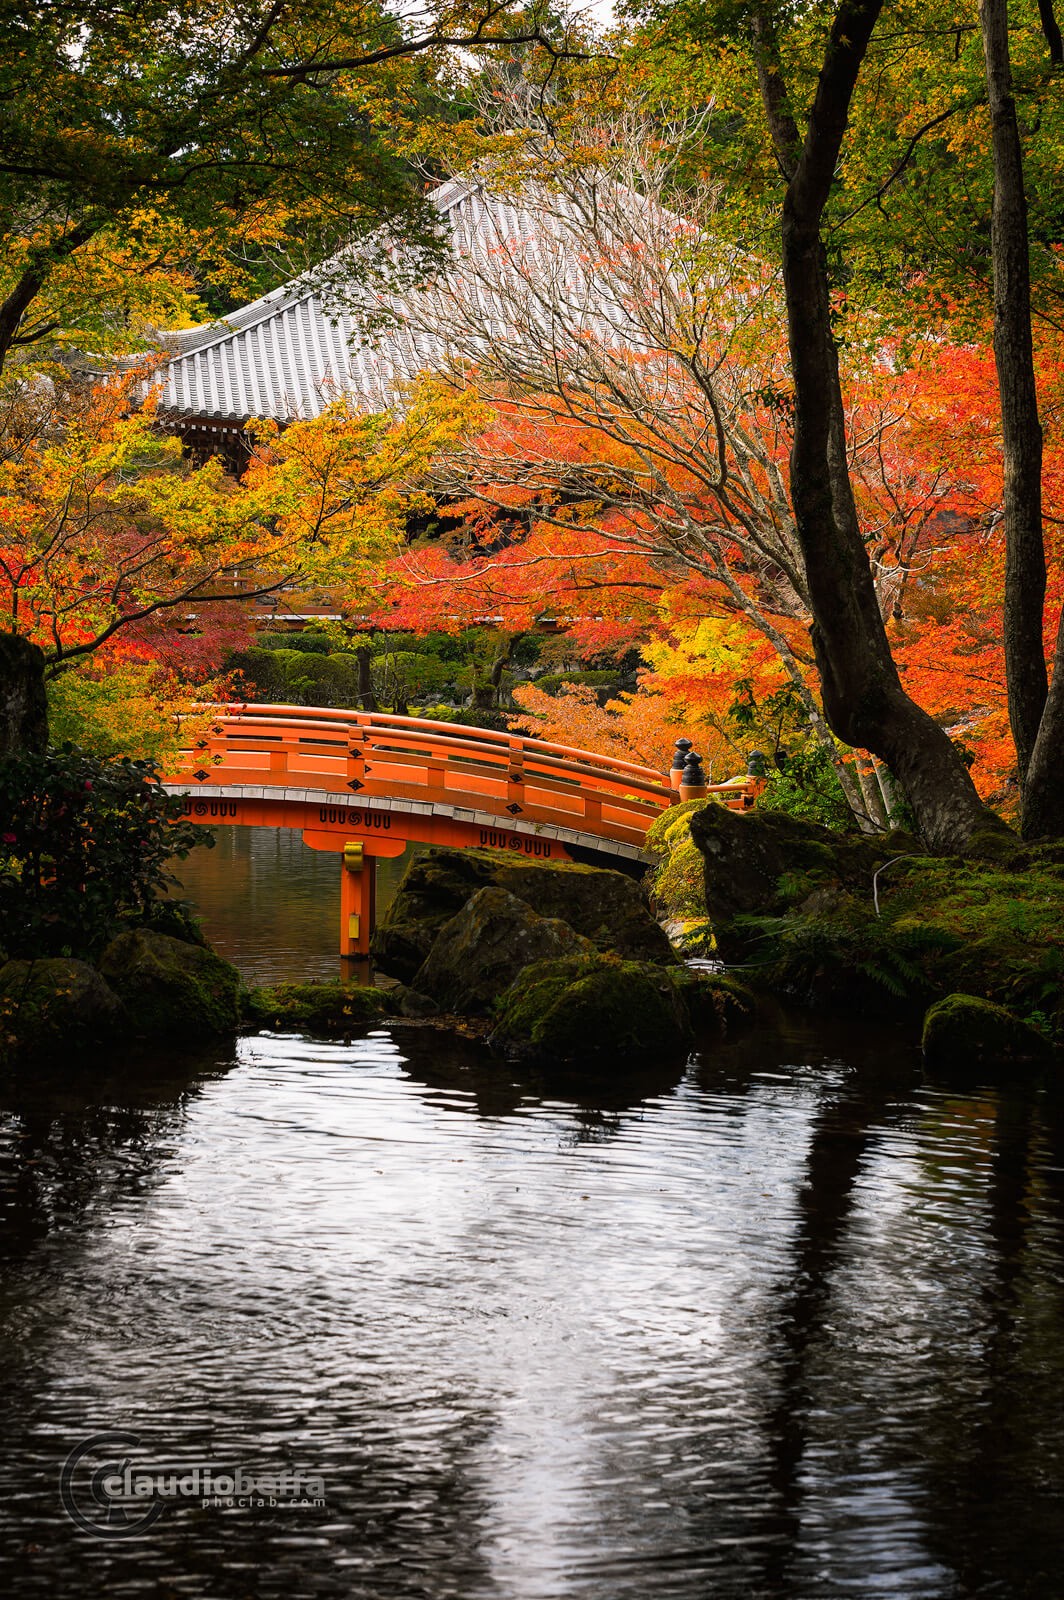 DaigoJi, Autumn, BentenDo, Kyoto, Japan, Momiji, Bridge, Pond, Passage toward autumn, Phoclab